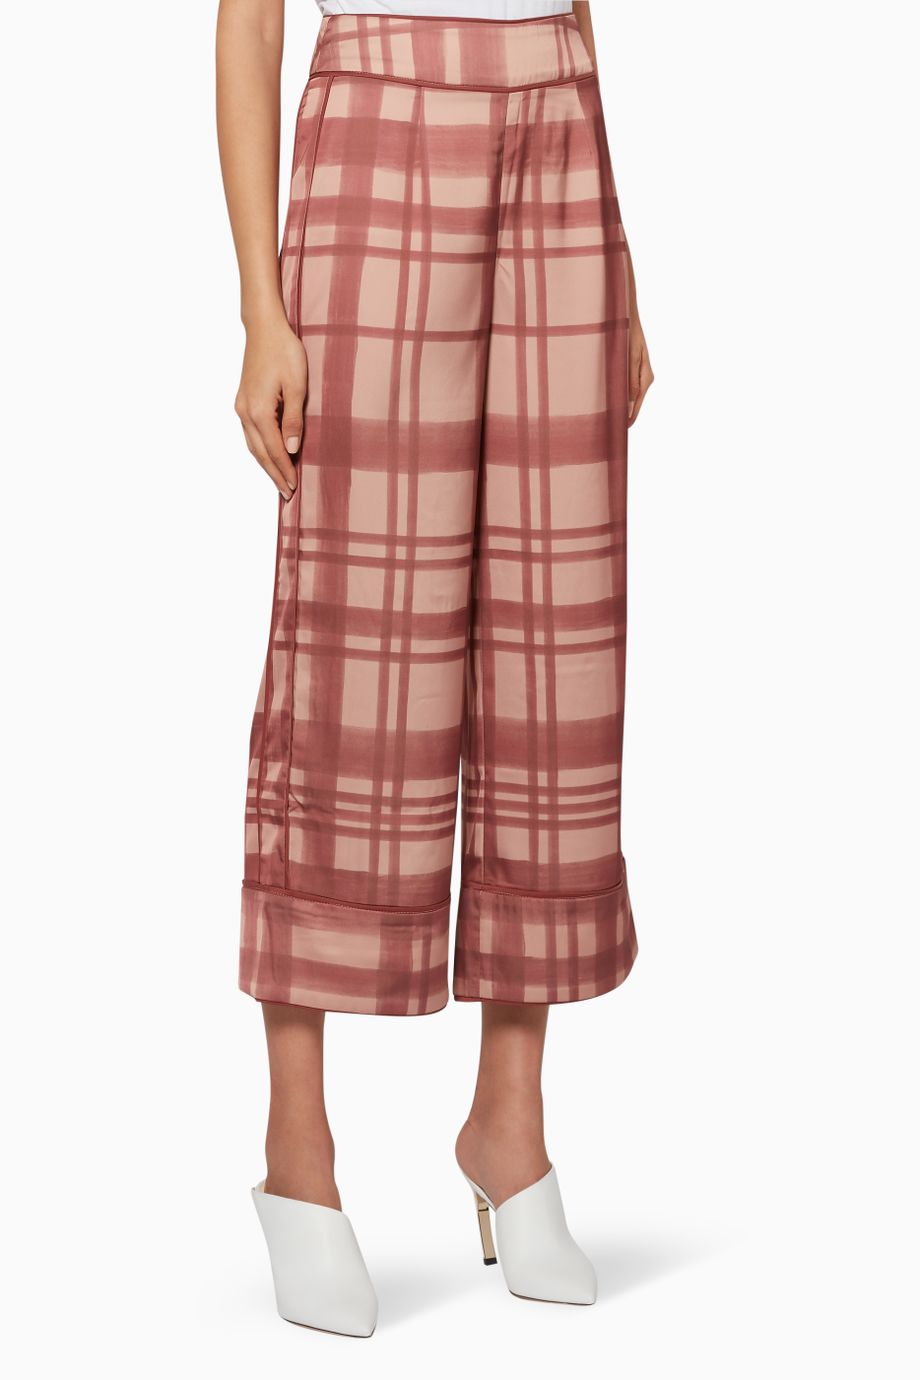 SIMPLE THINGS co-ord wide-leg cropped trousers - mahogany check